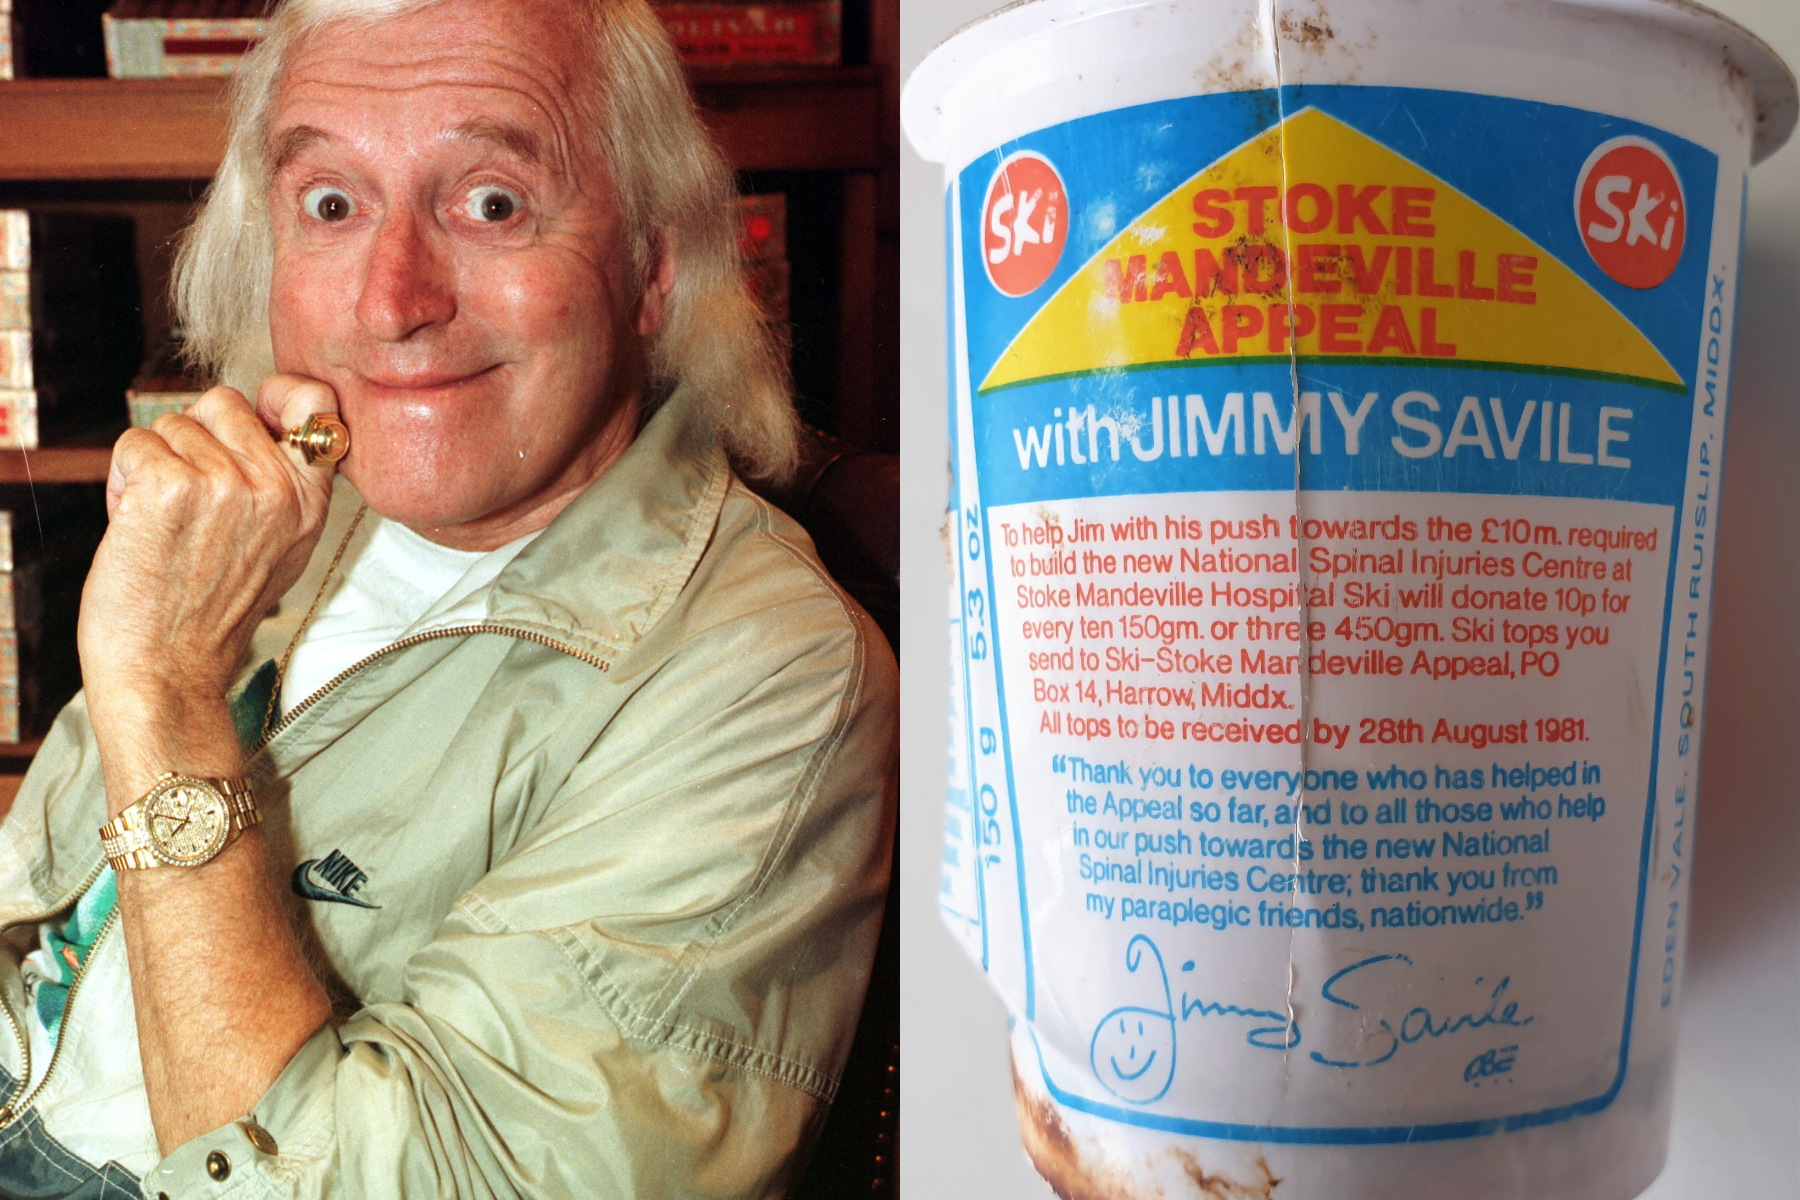 Beach cleaners find 40-year-old plastic yogurt pot with Jimmy Savile fundraising appeal on label